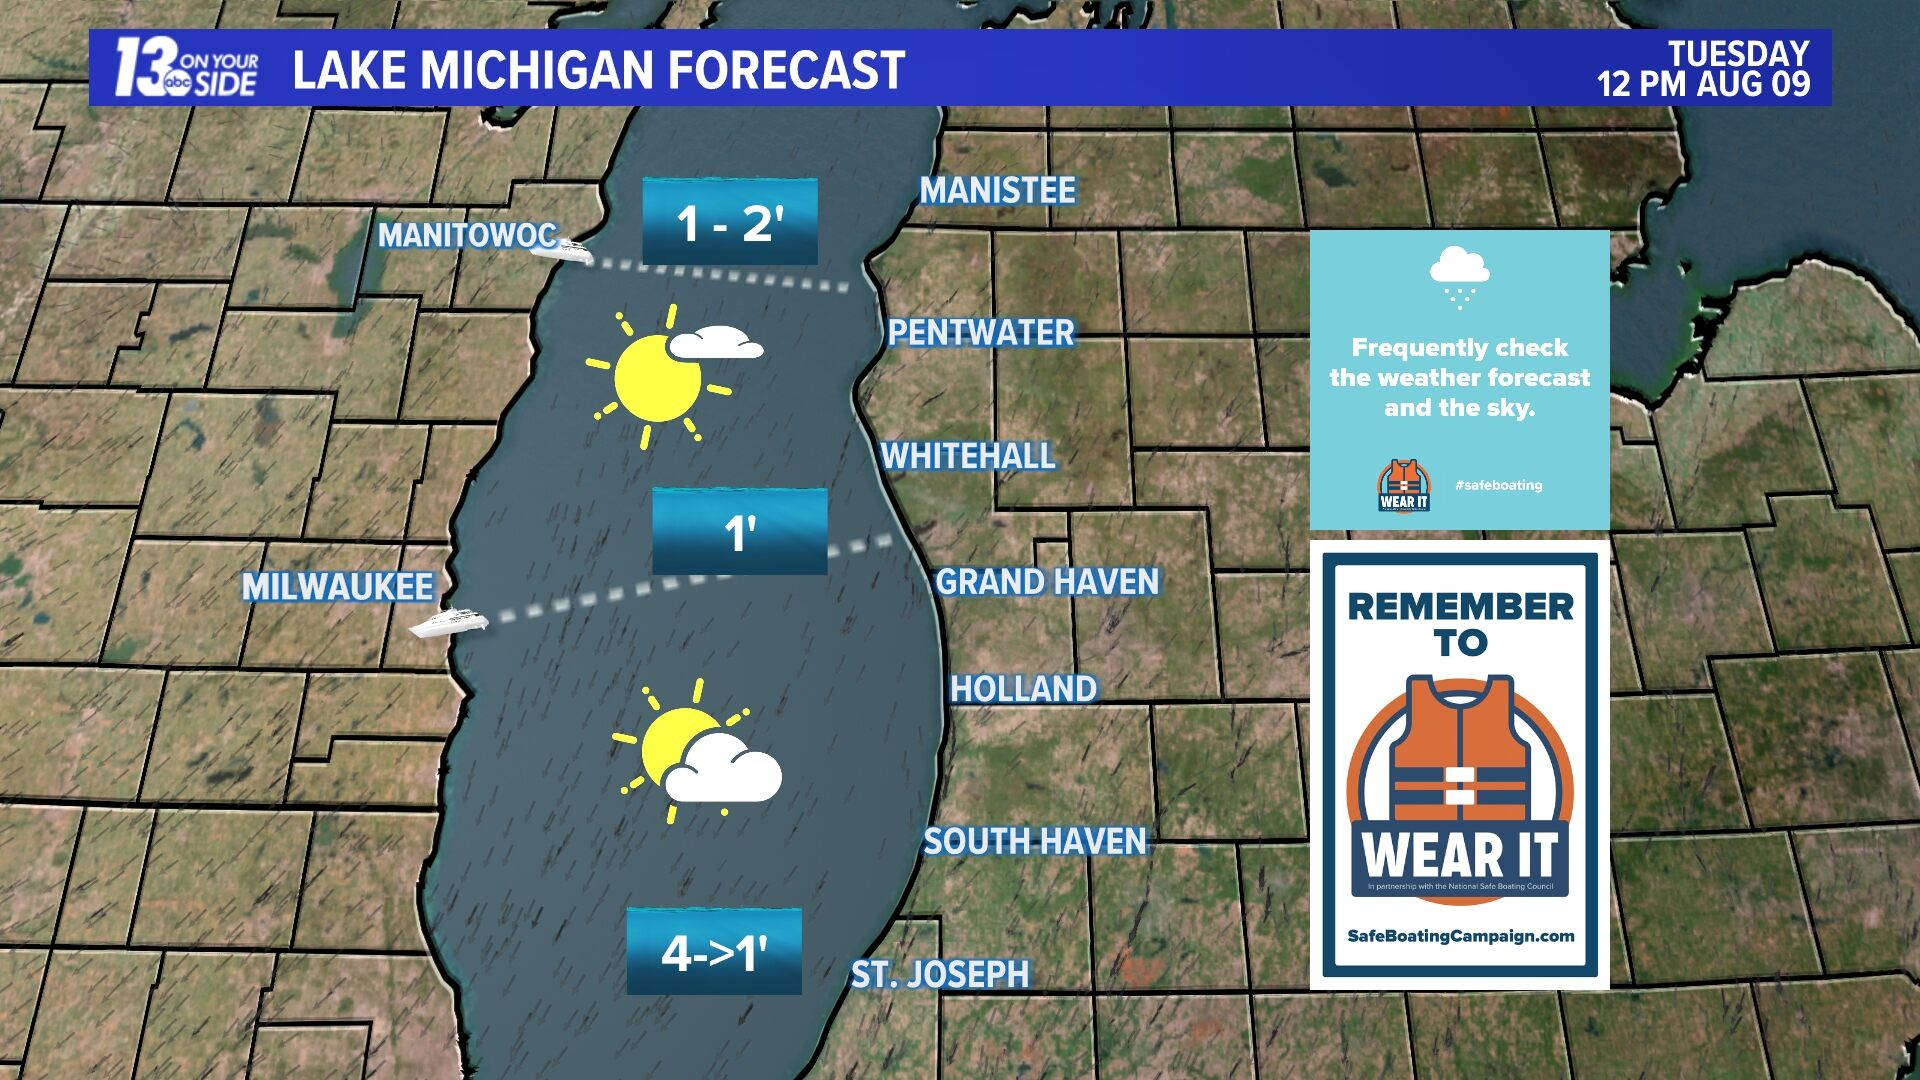 Lake Michigan Forecast